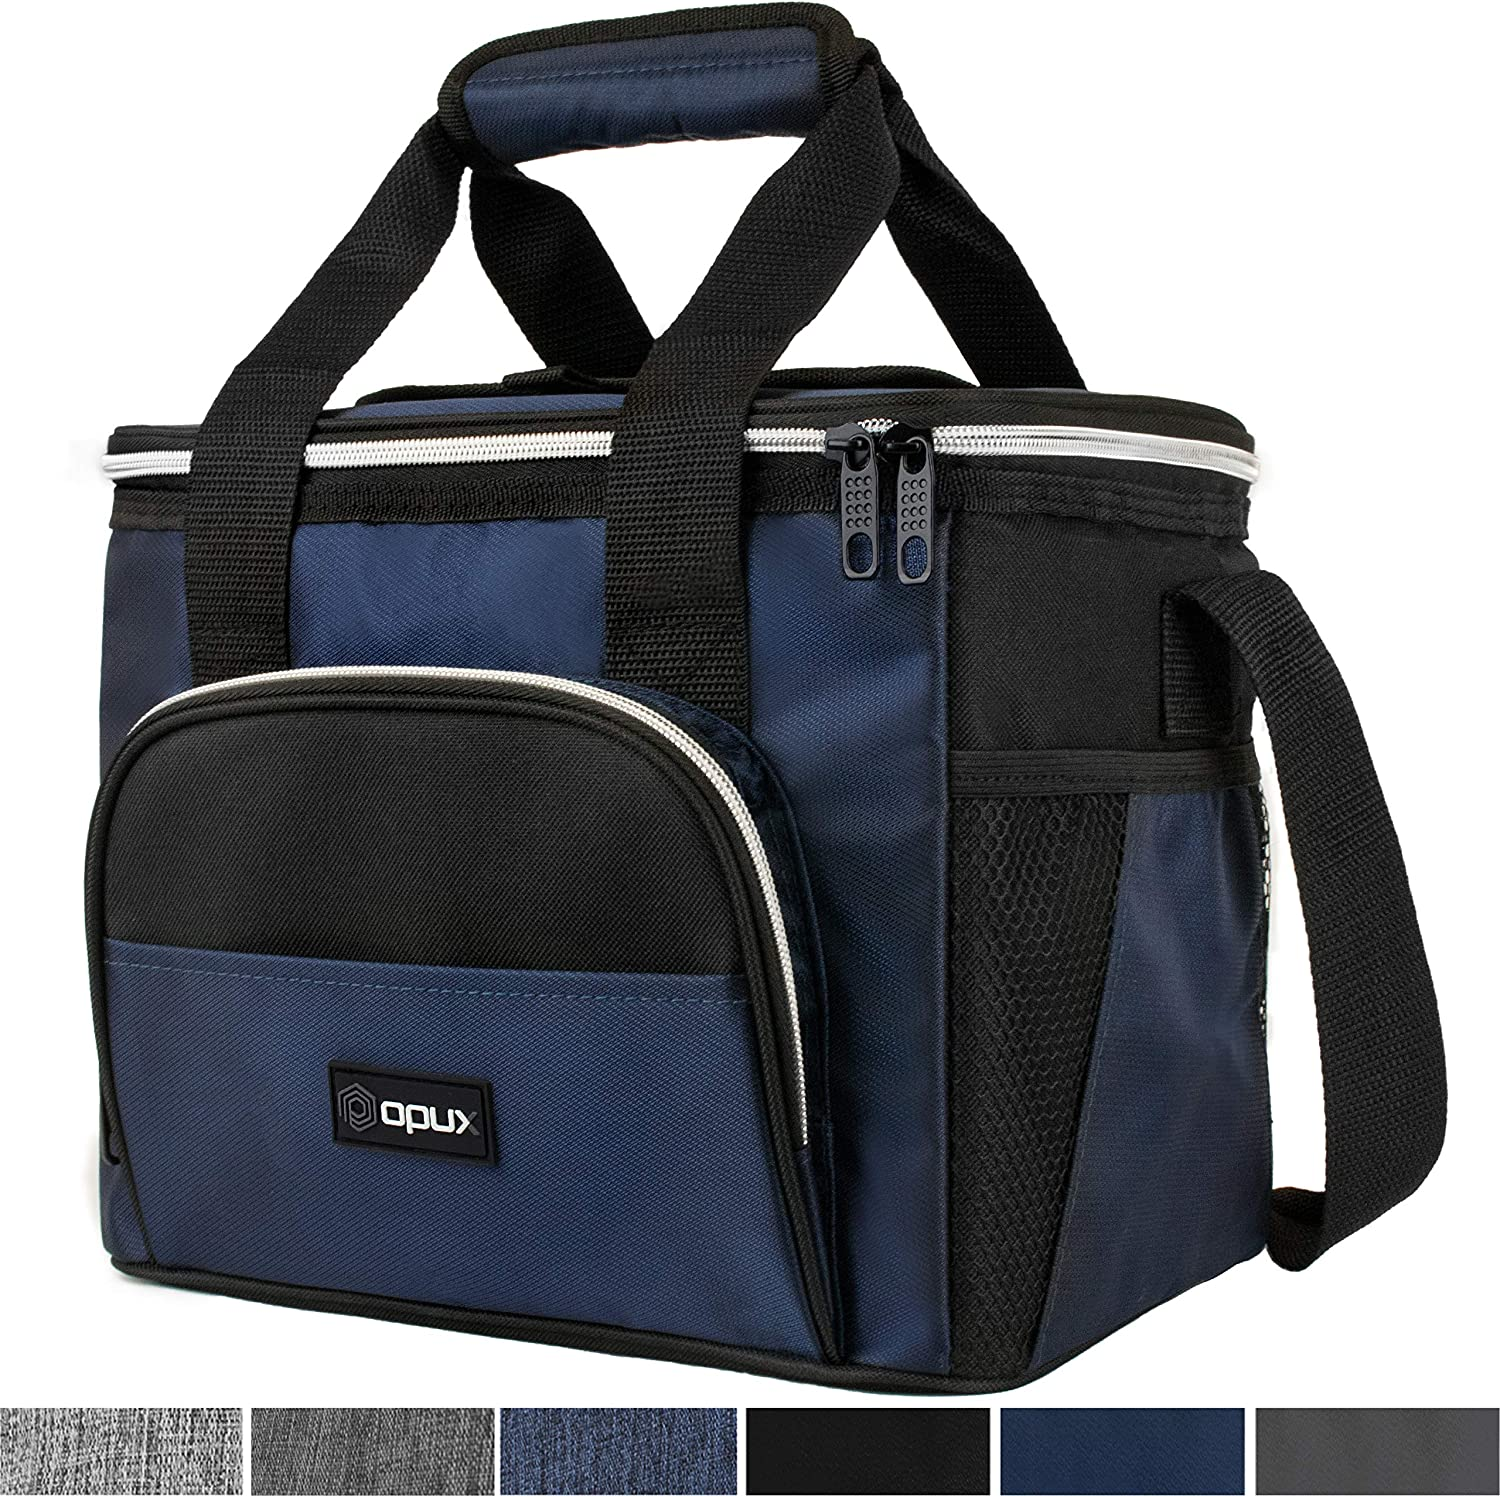 OPUX Insulated Collapsible Soft Cooler 9 Quart | Lunch Bag for Men, Small Travel Cooler for Camping, Family, BBQ, Picnic, Beach, Car, Soft-Sided Leakproof Lunch Box for Work | Fits 16 Cans (Navy)